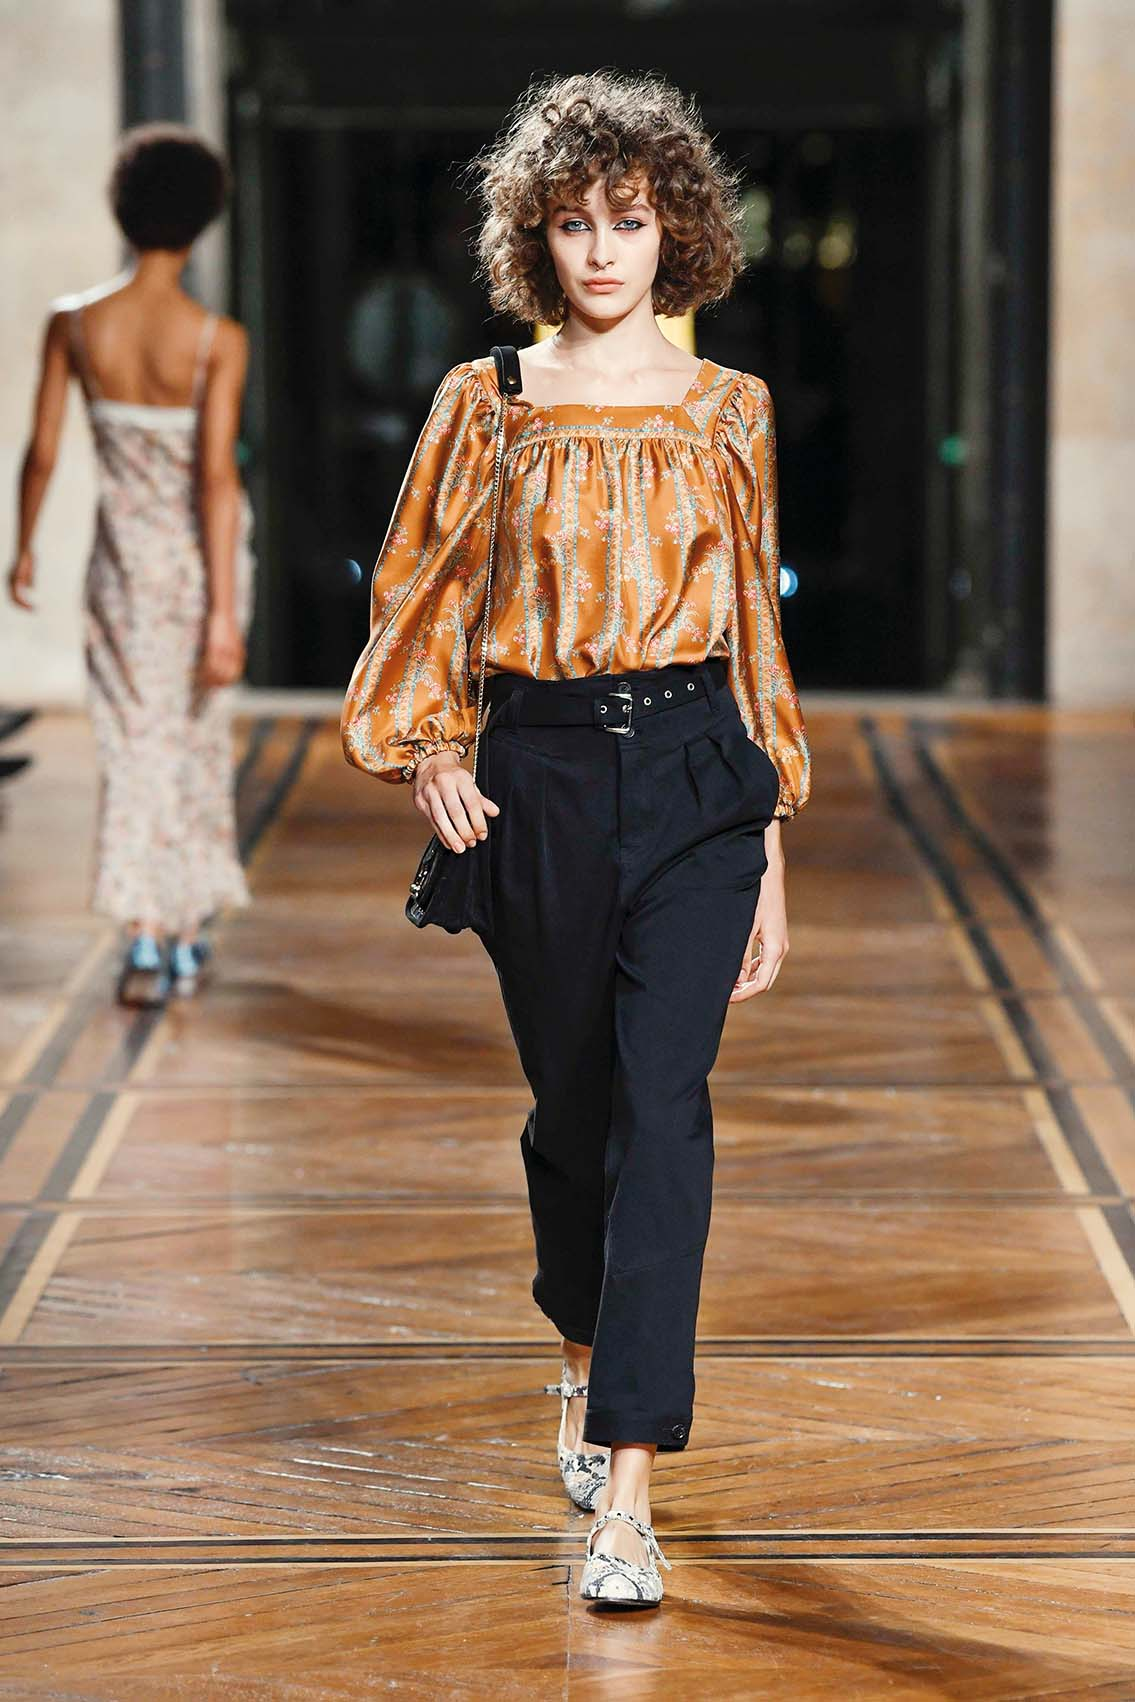 A model presenting a creation by Paul and Joe during the Spring-Summer 2018 fashion shows in Paris, France - 10/03/17//Z-PIXEL-FORMULA_D_073/Credit:Pixelformula/SIPA/1710040000, Image: 351706607, License: Rights-managed, Restrictions: , Model Release: no, Credit line: Profimedia, TEMP Sipa Press